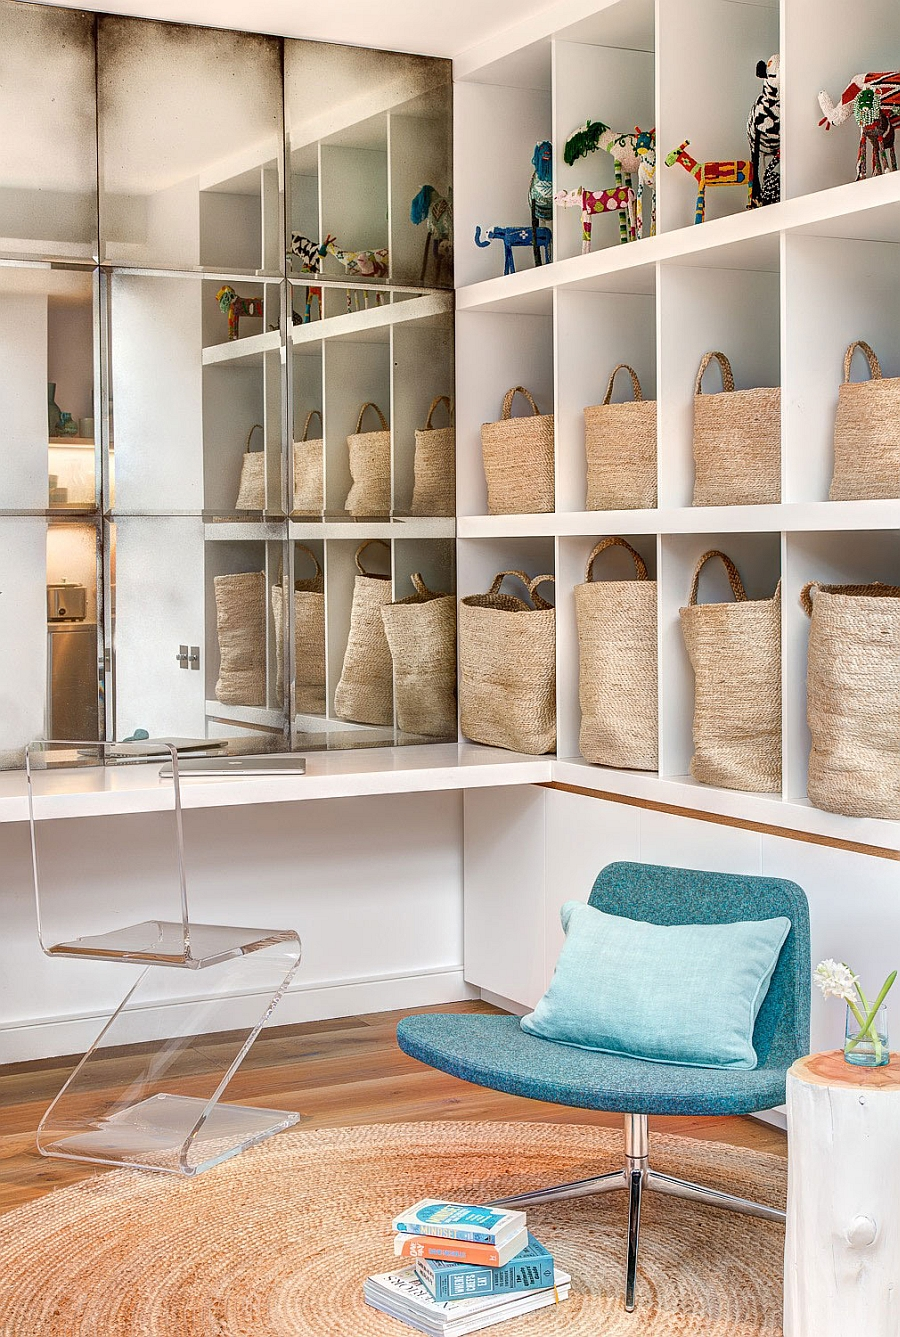 Acrylic chair and smart organization ideas in the home office